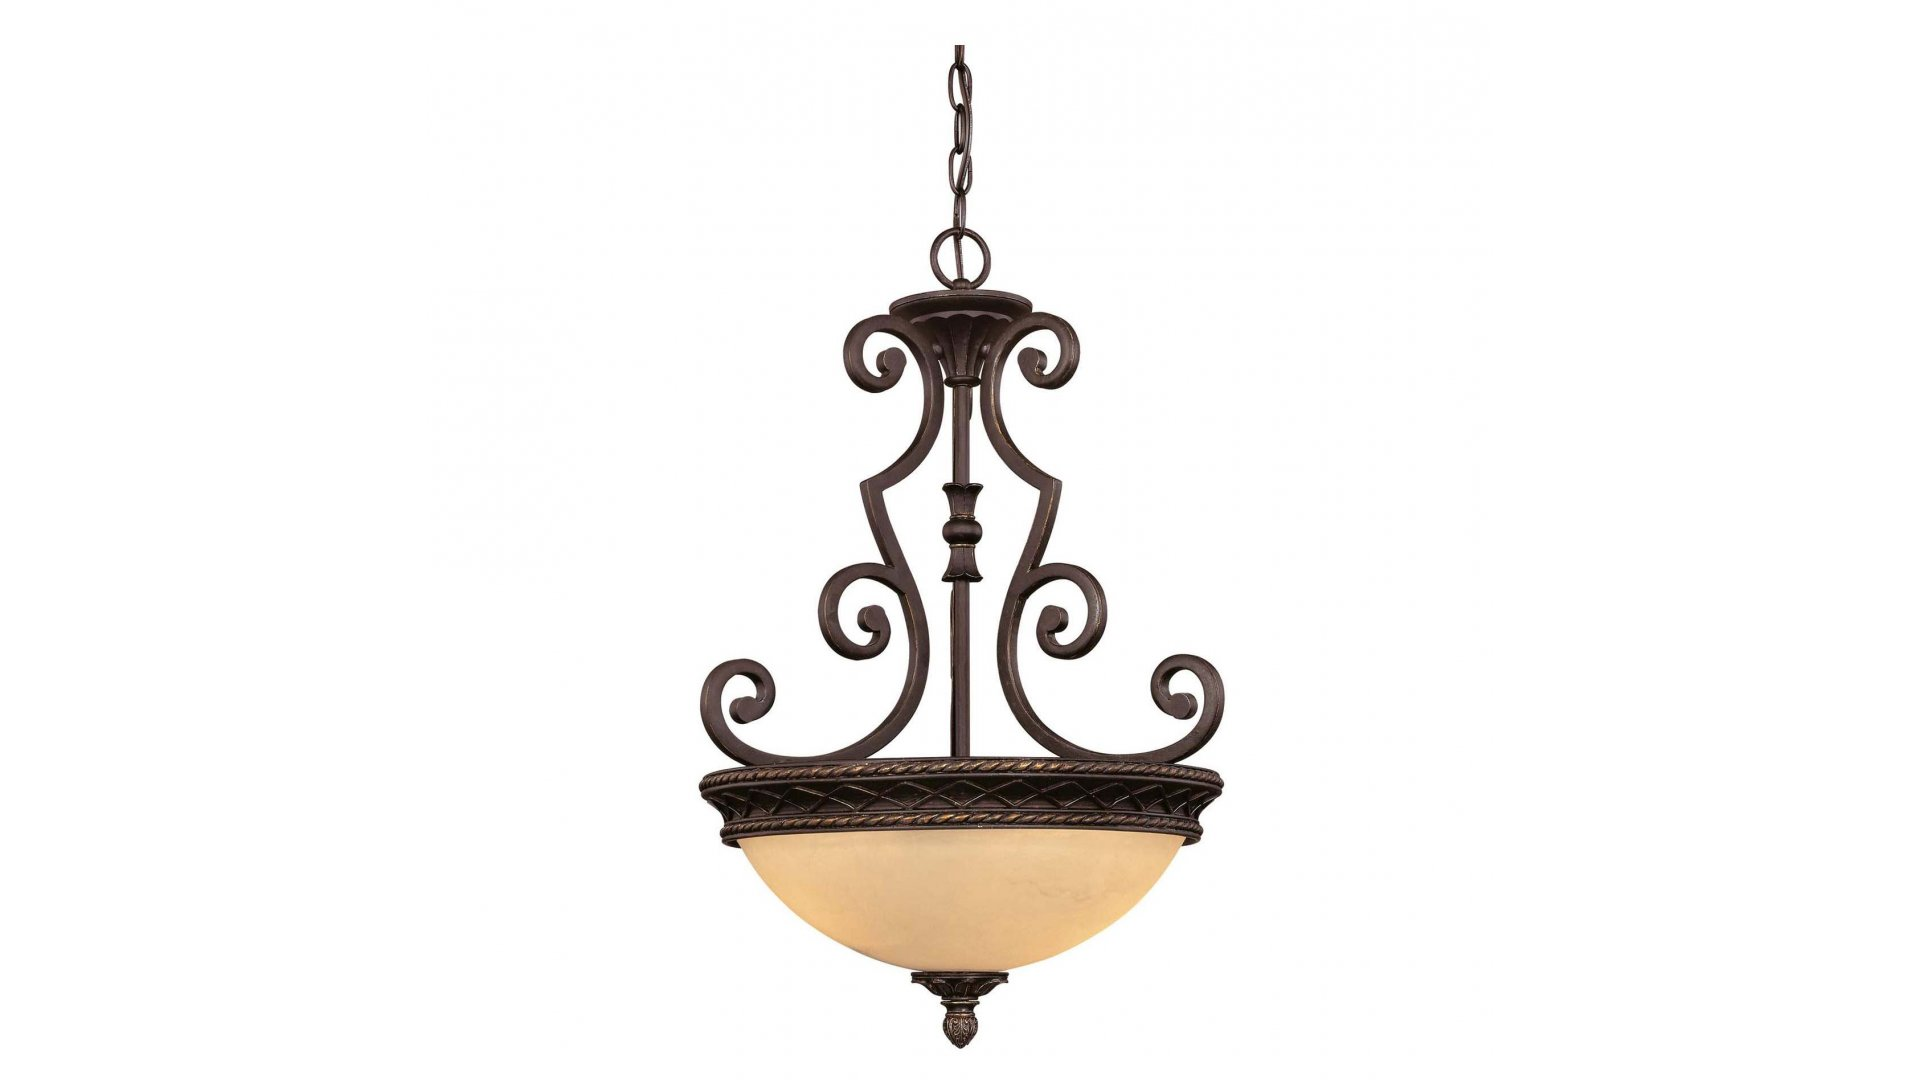 Savoy House Lighting Model 9 6723 1 213 Shadwell Wall Sconce Light Fixture English Bronze Clear Watered Finish